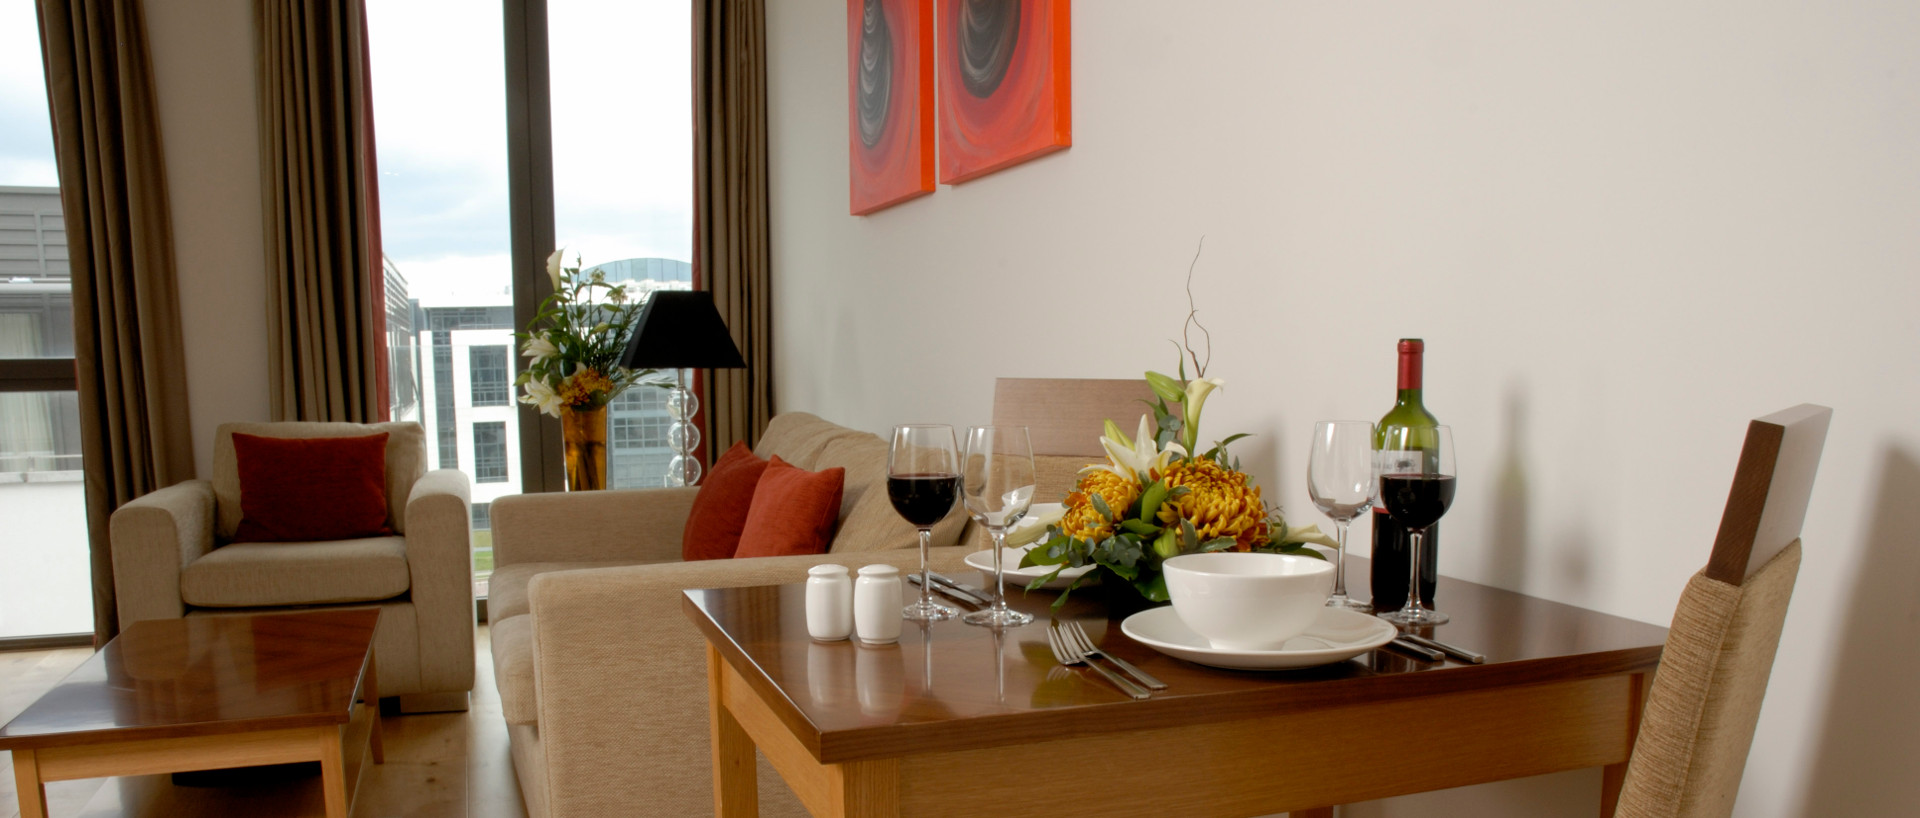 The dining table set up for dinner at PREMIER SUITES Sandyford serviced apartments